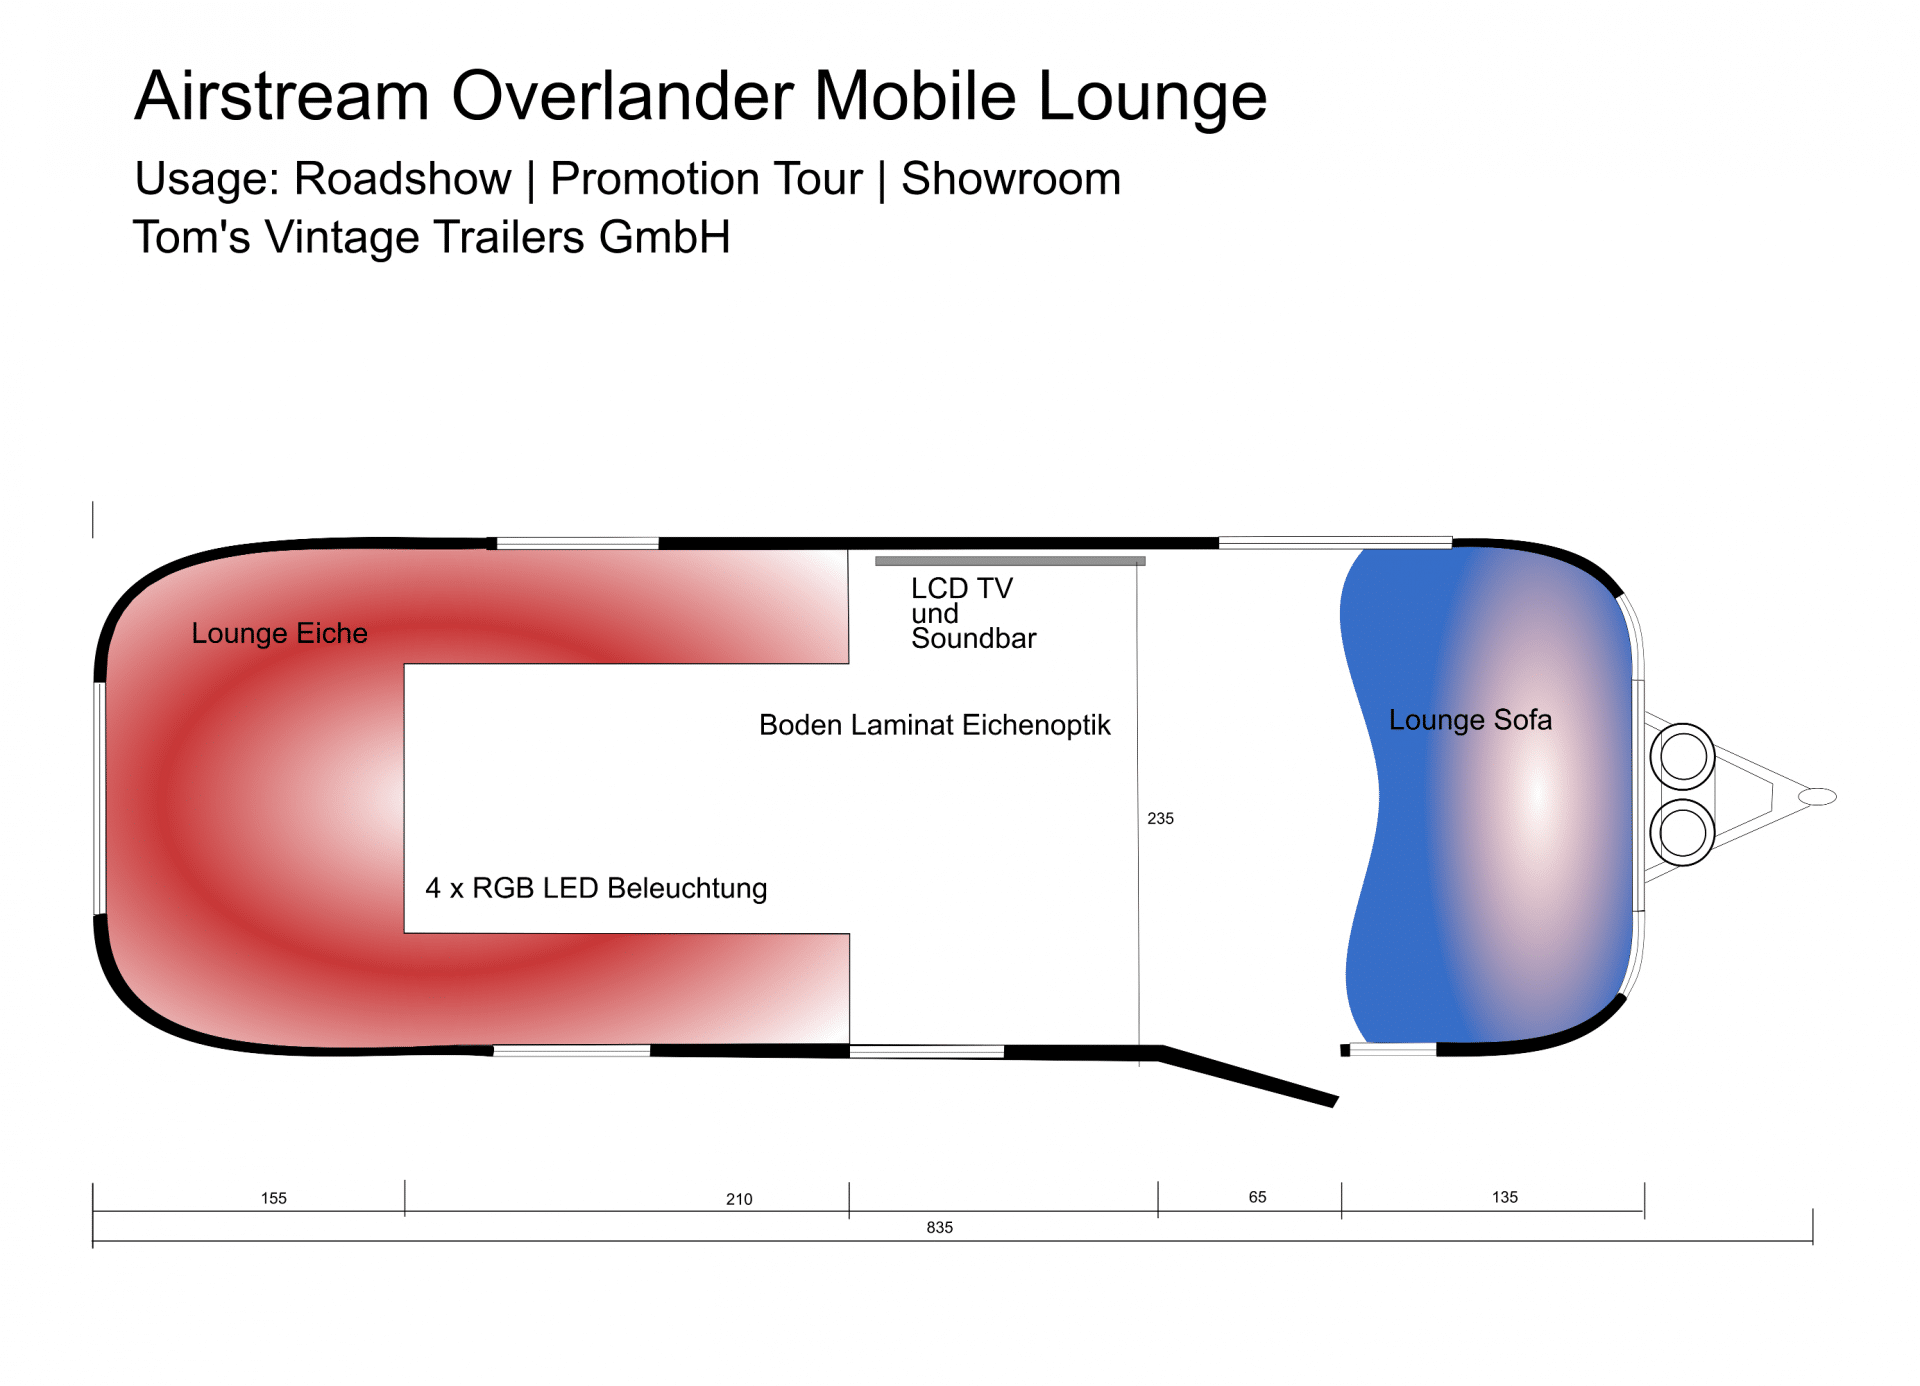 Airstream_Mobile_Lounge_Floorplan